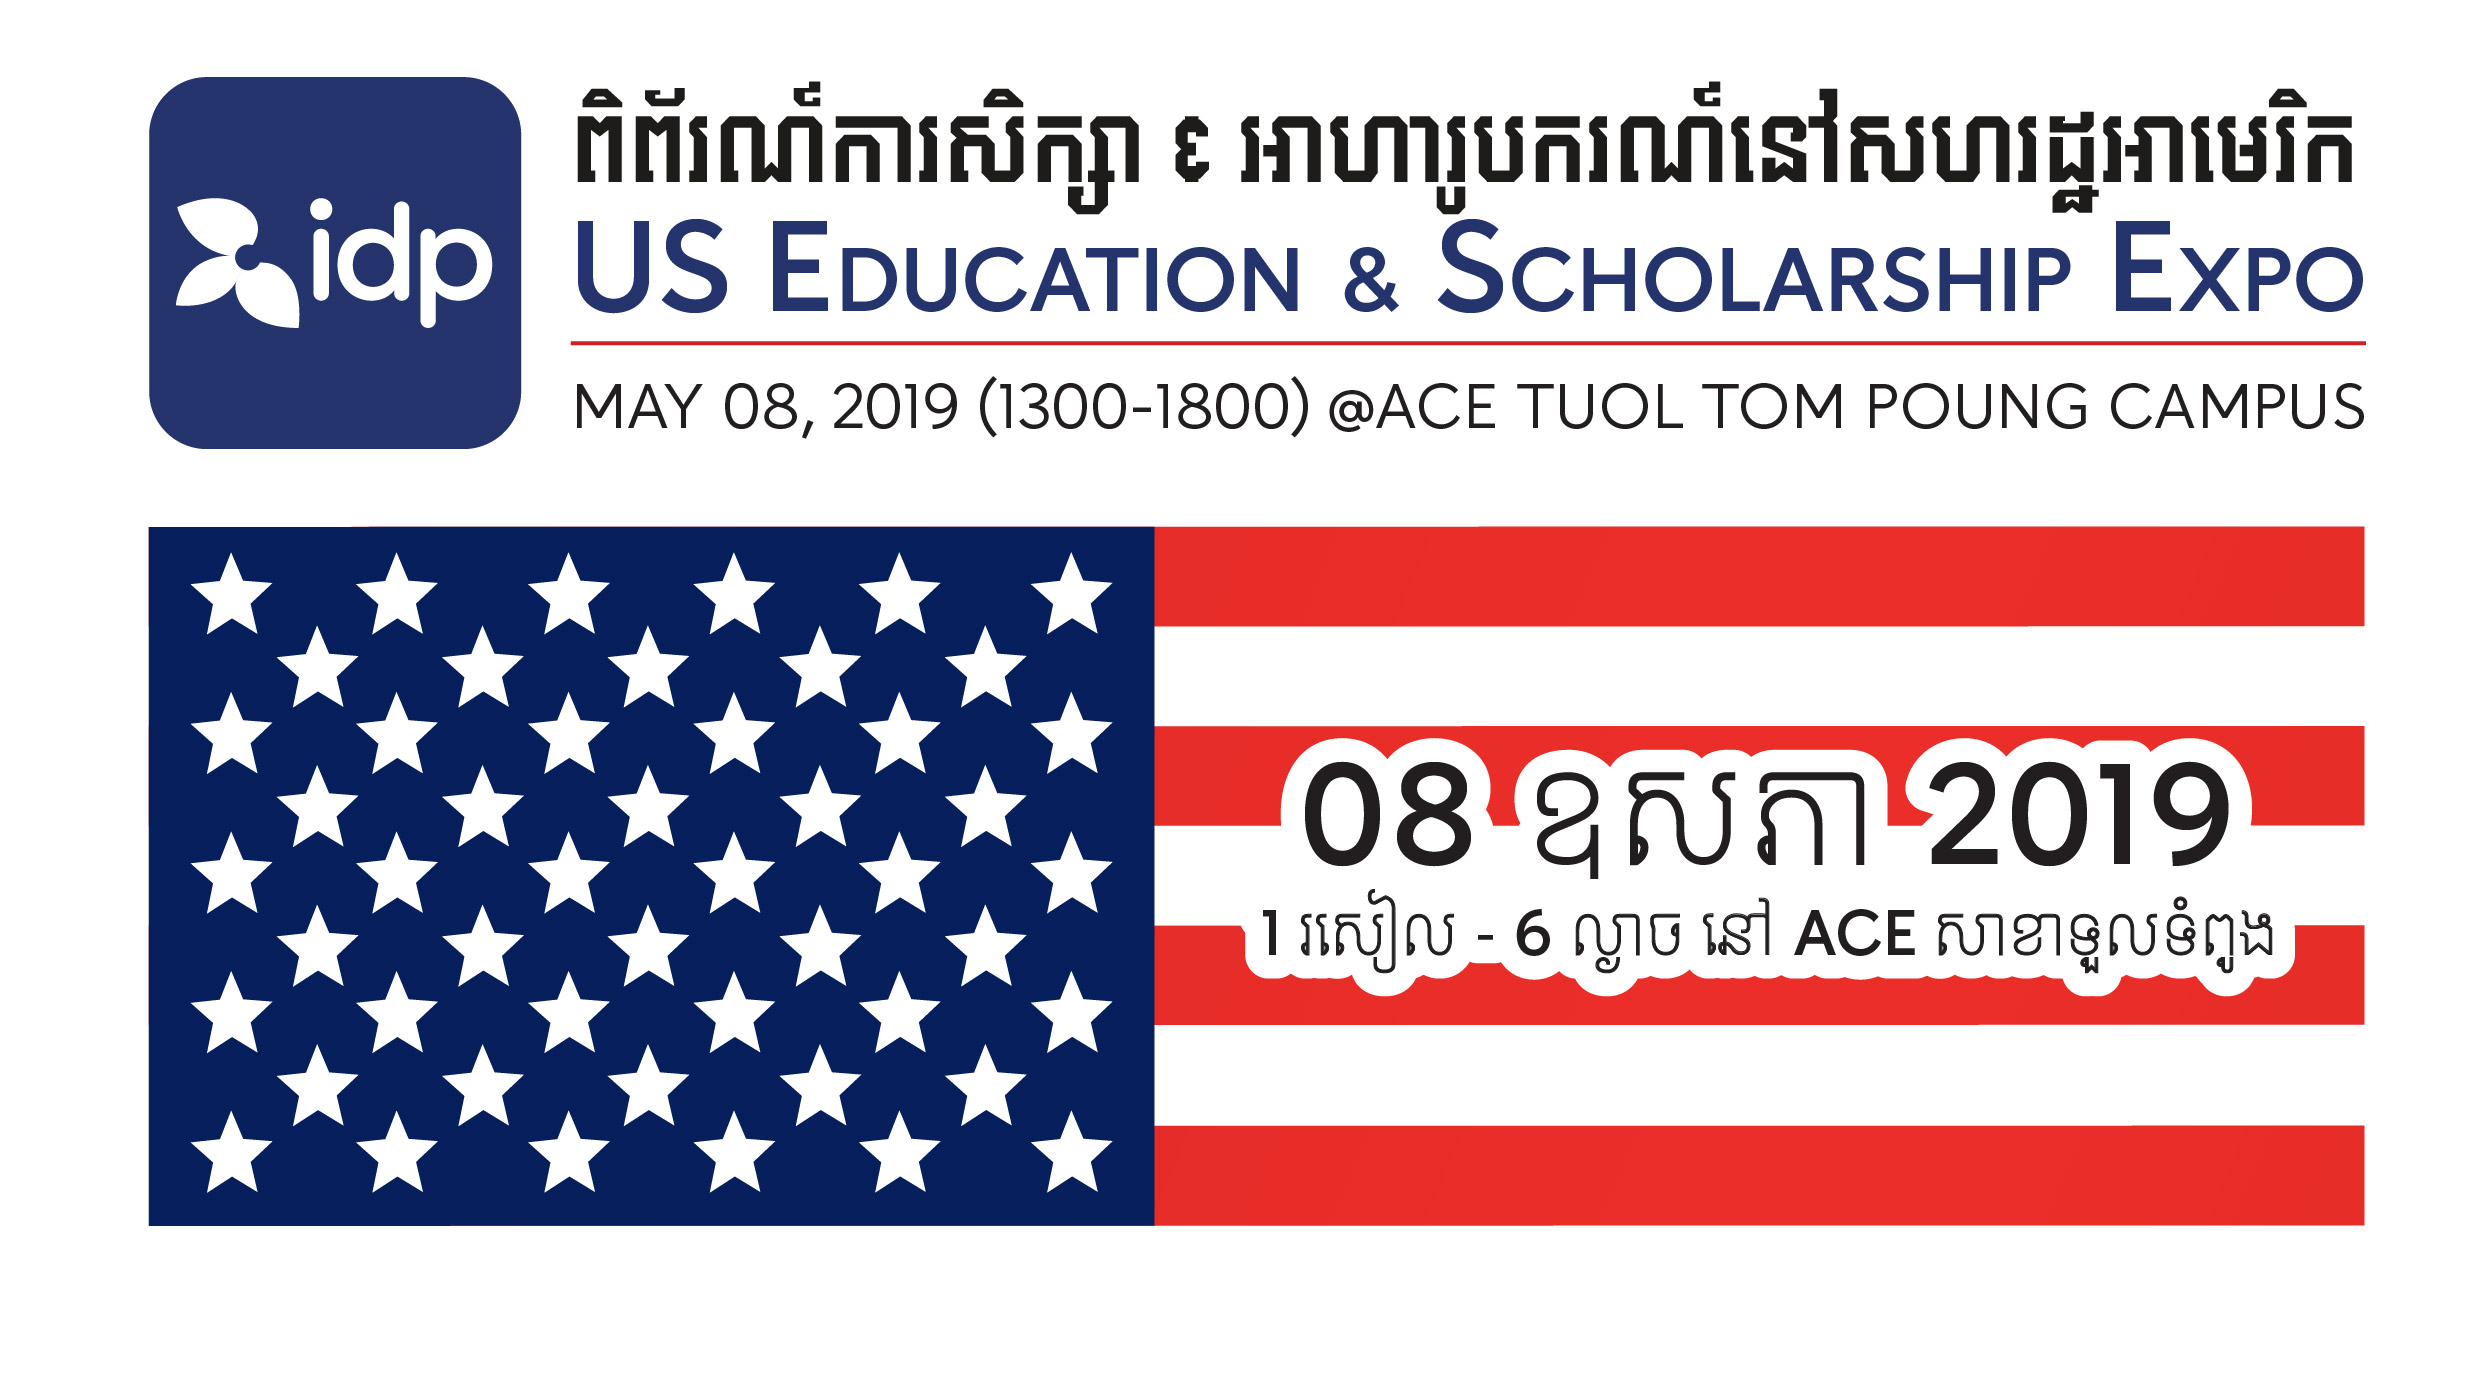 IDP US Education & Scholarship Expo